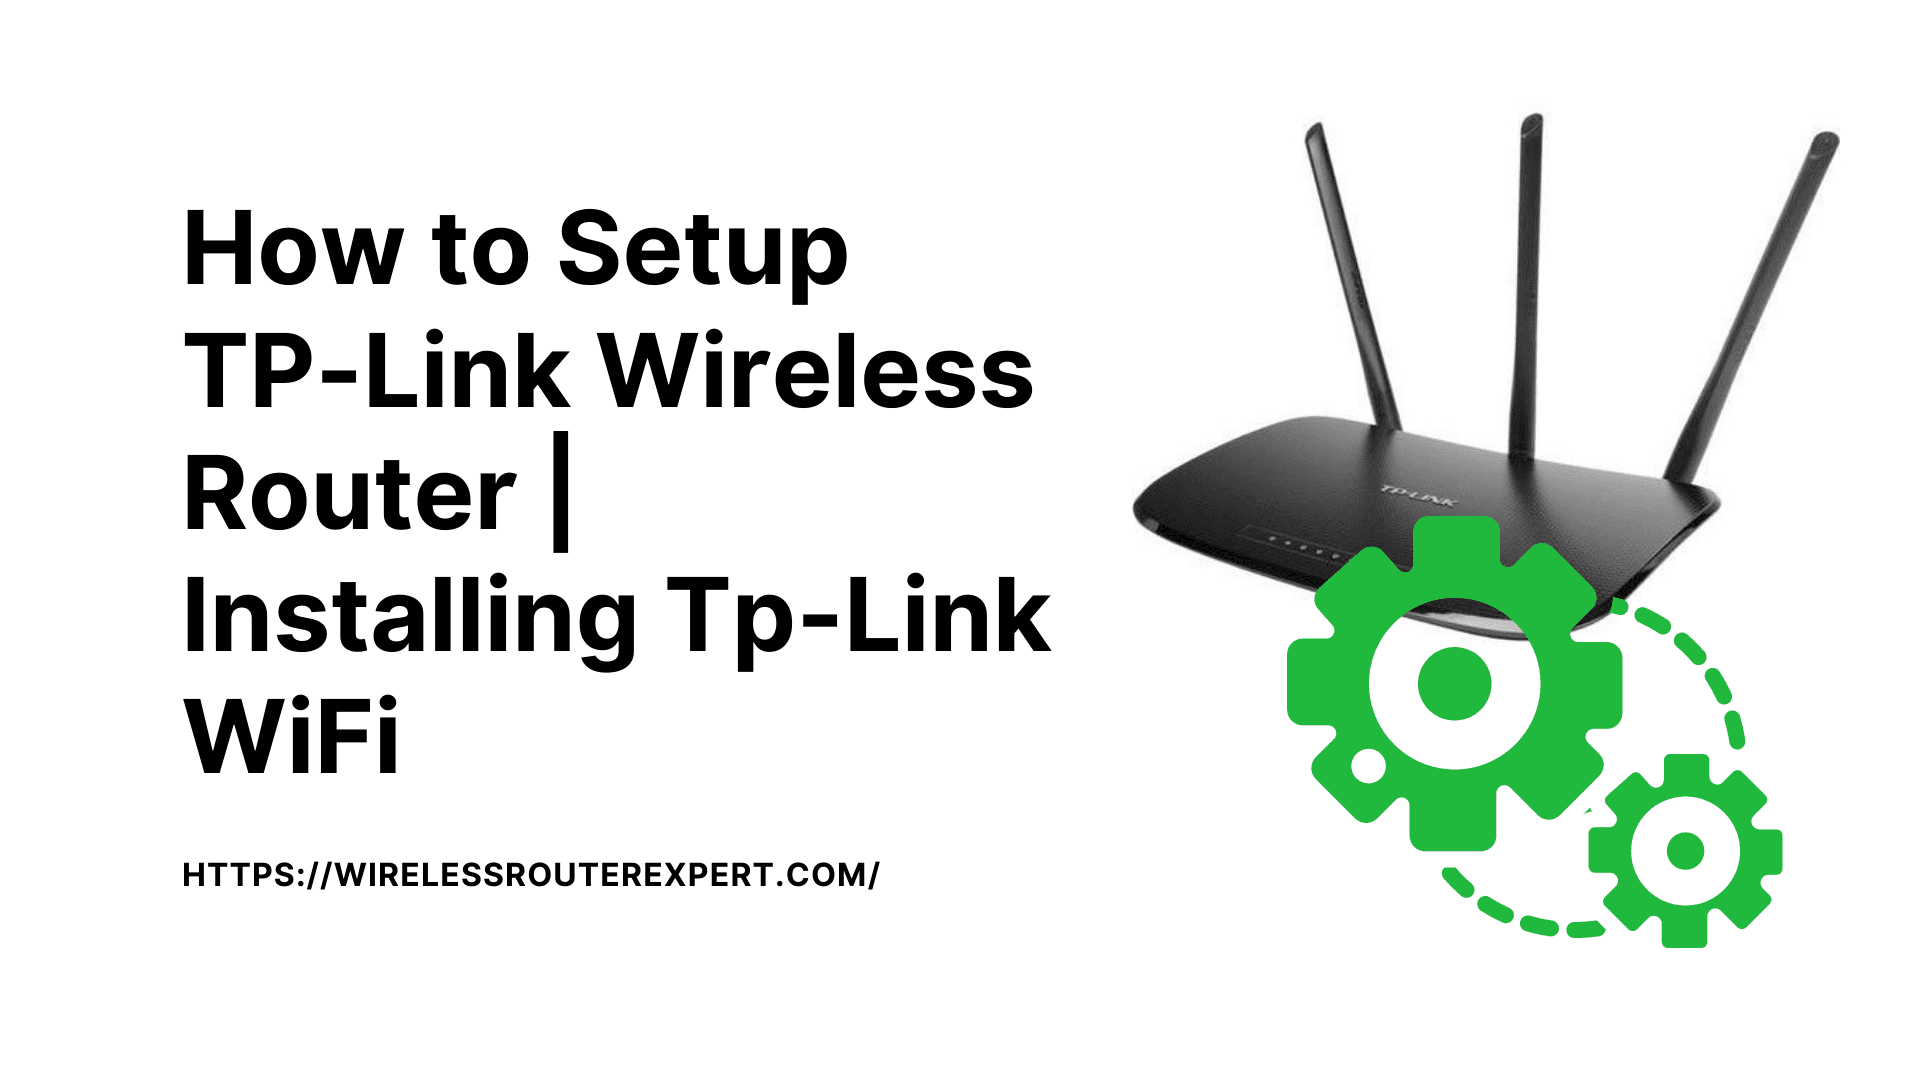 How to Setup TP-Link Wireless Router | Installing Tp-Link WiFi